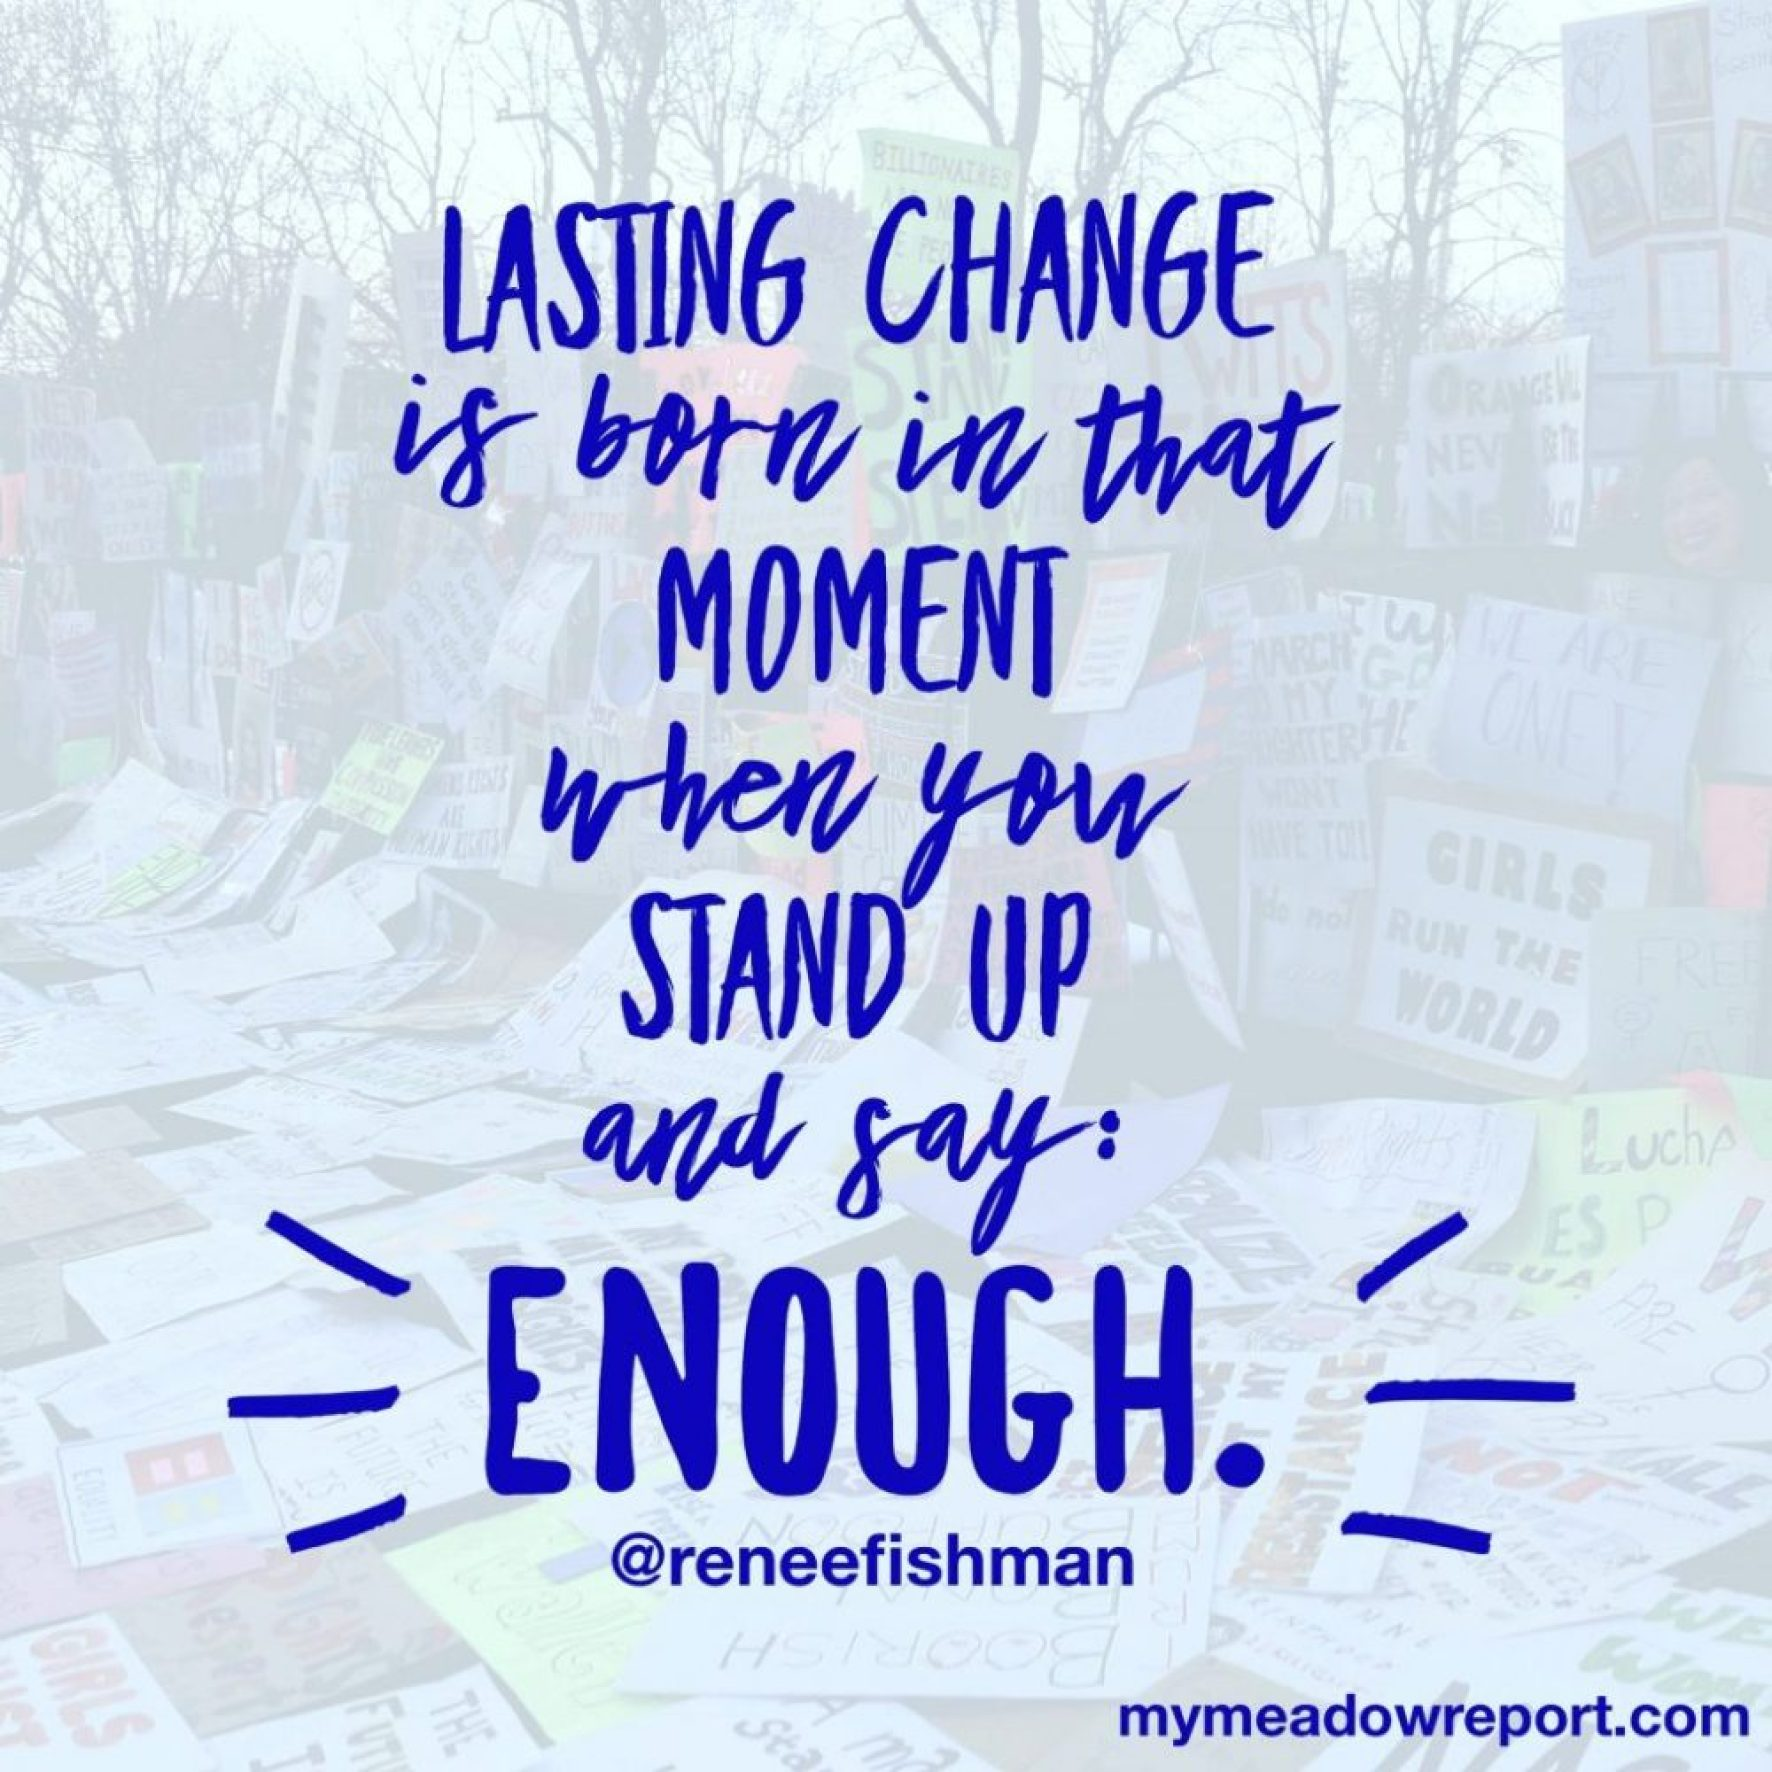 Quote lasting change is born in enough